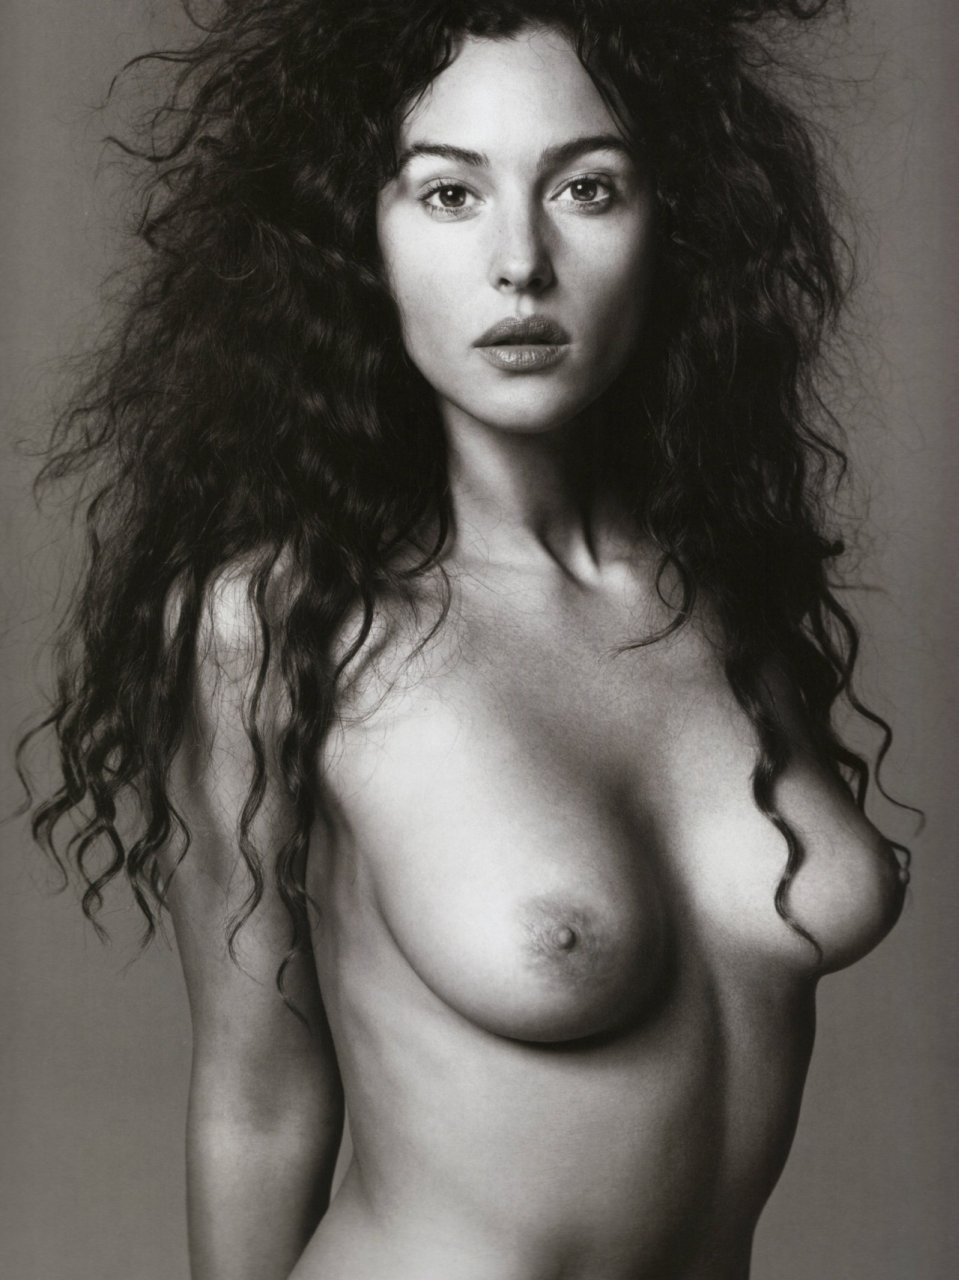 Monica bellucci boobs keep